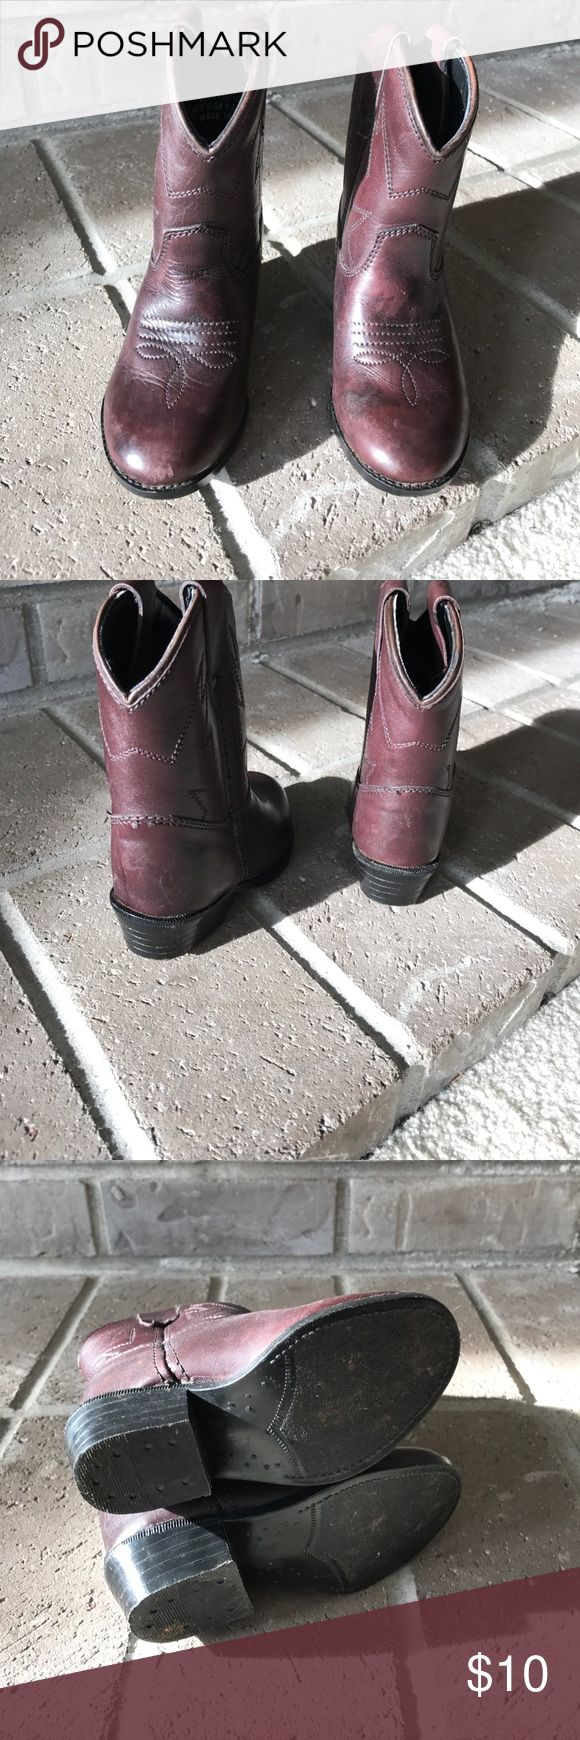 🐴🐴Kids cowboy boots Leather cowboy boots for your little cowboy or cowgirl.  Only worn a few times Shoes Boots